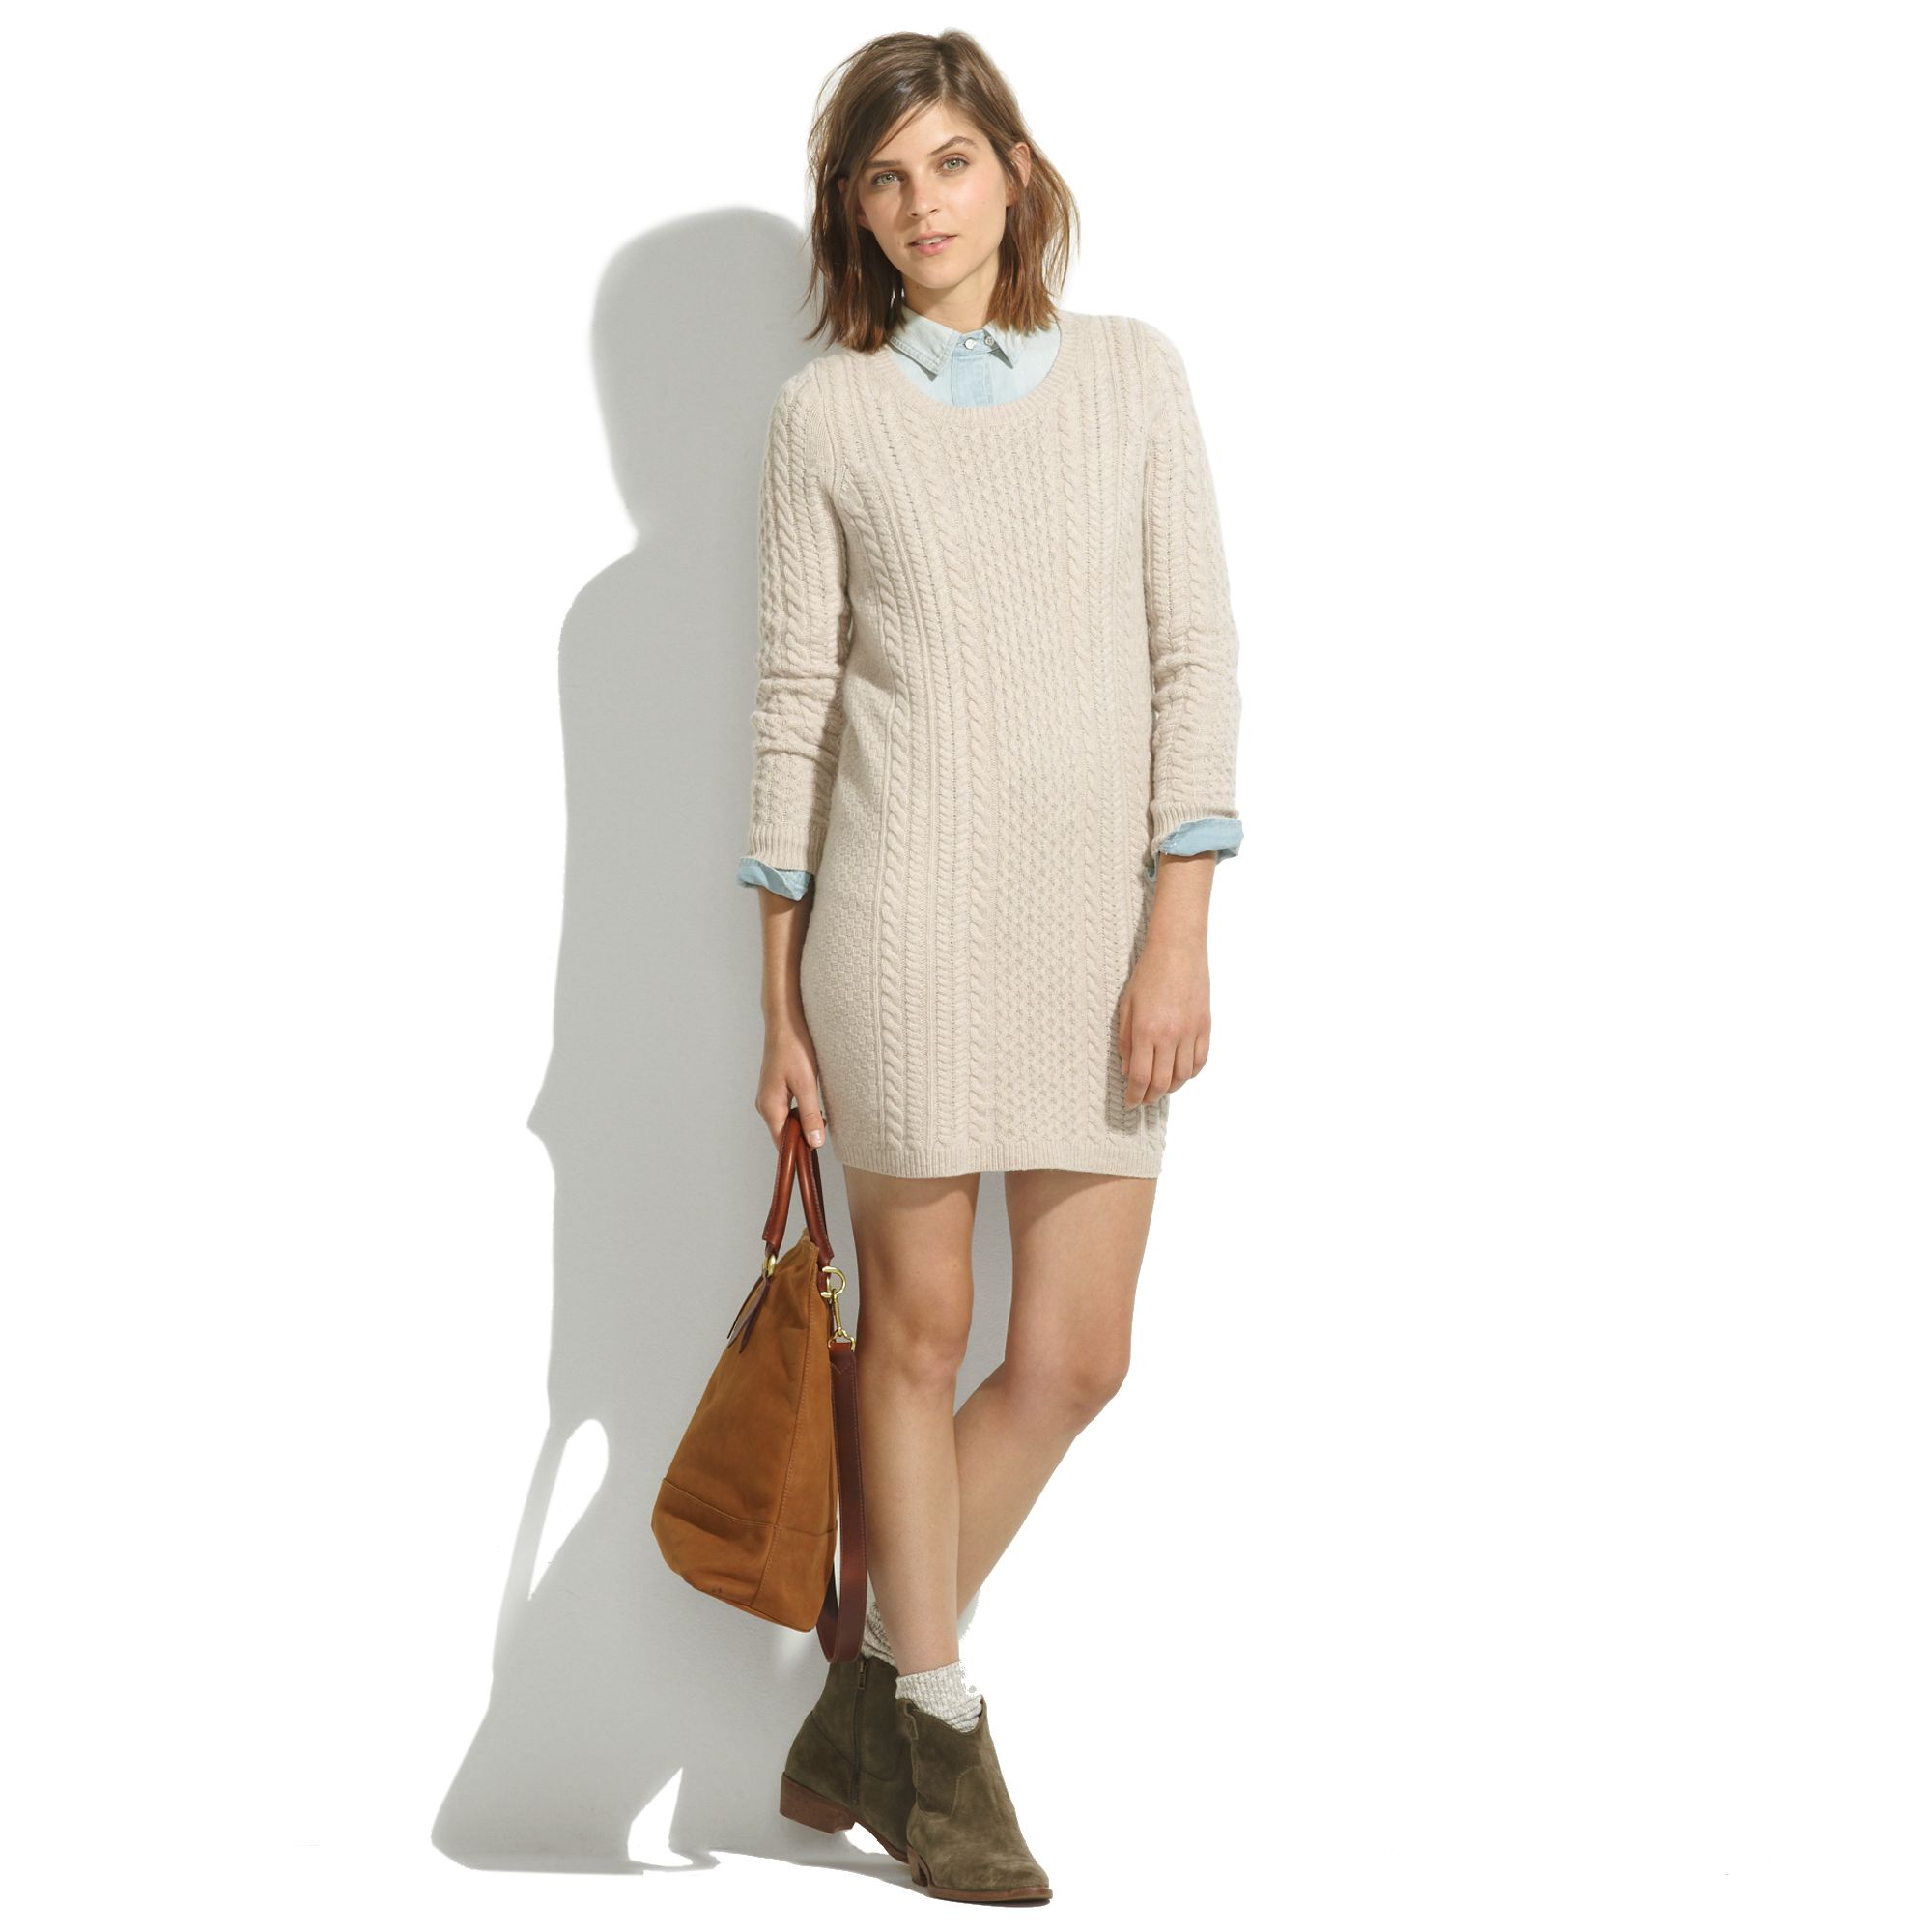 f2b1173bc8f Madewell Merino Sweaterdress in Natural - Lyst